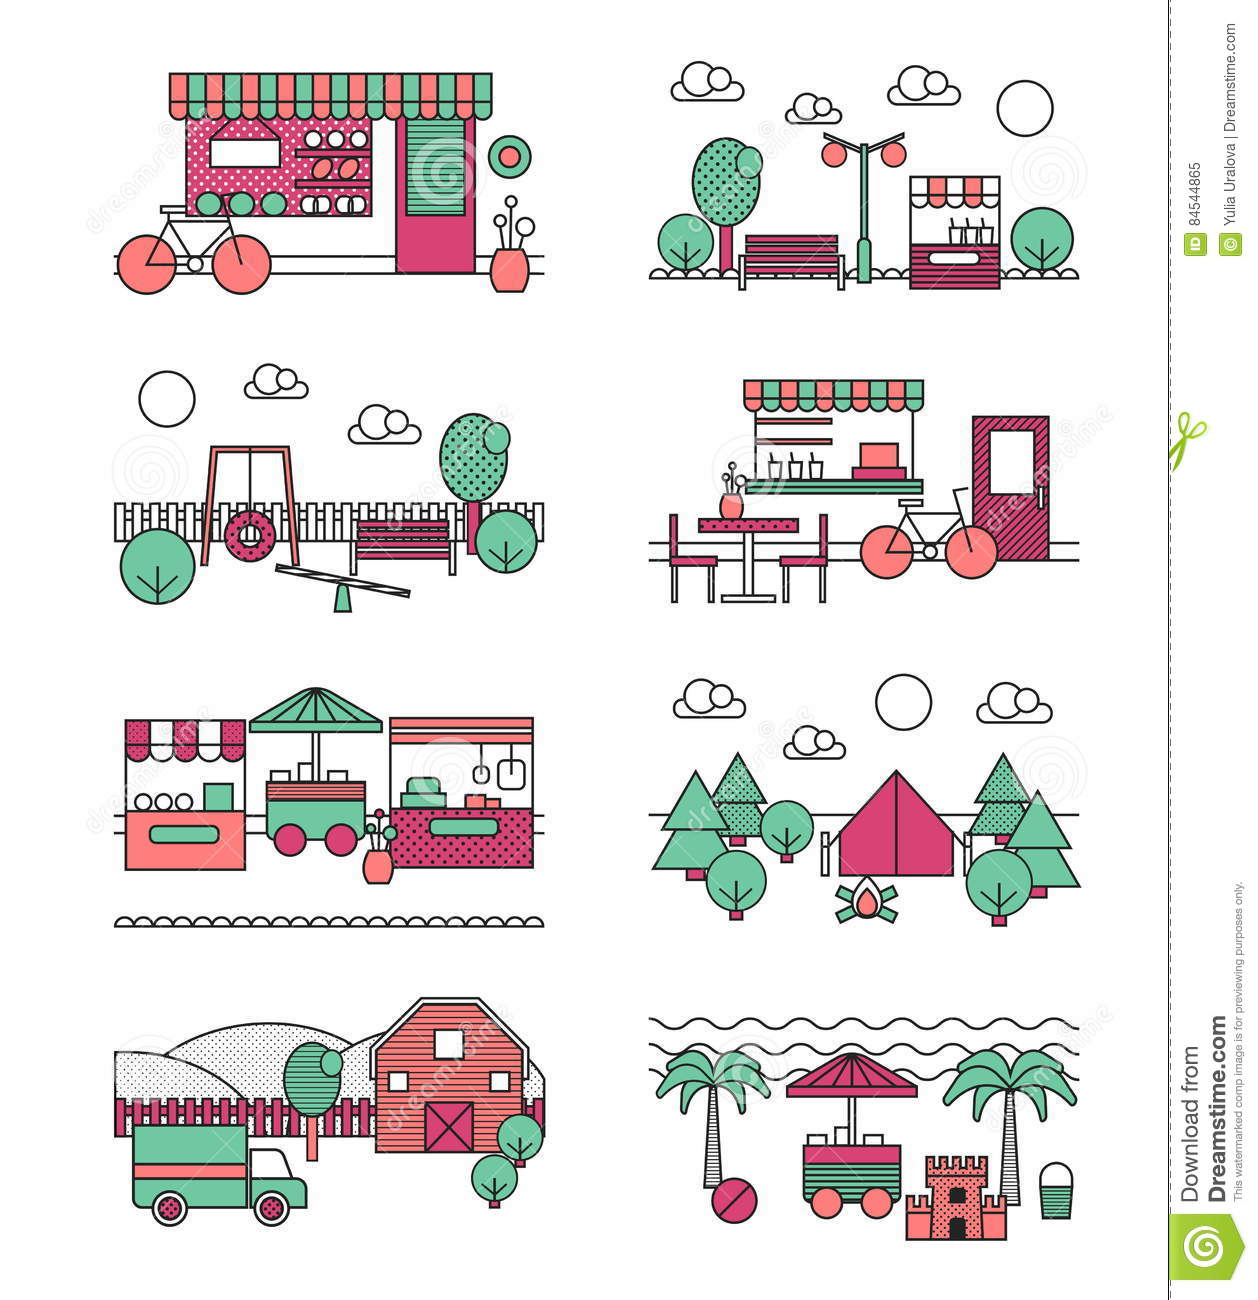 Outdoor Activity Places Urban And Natural Landscapes